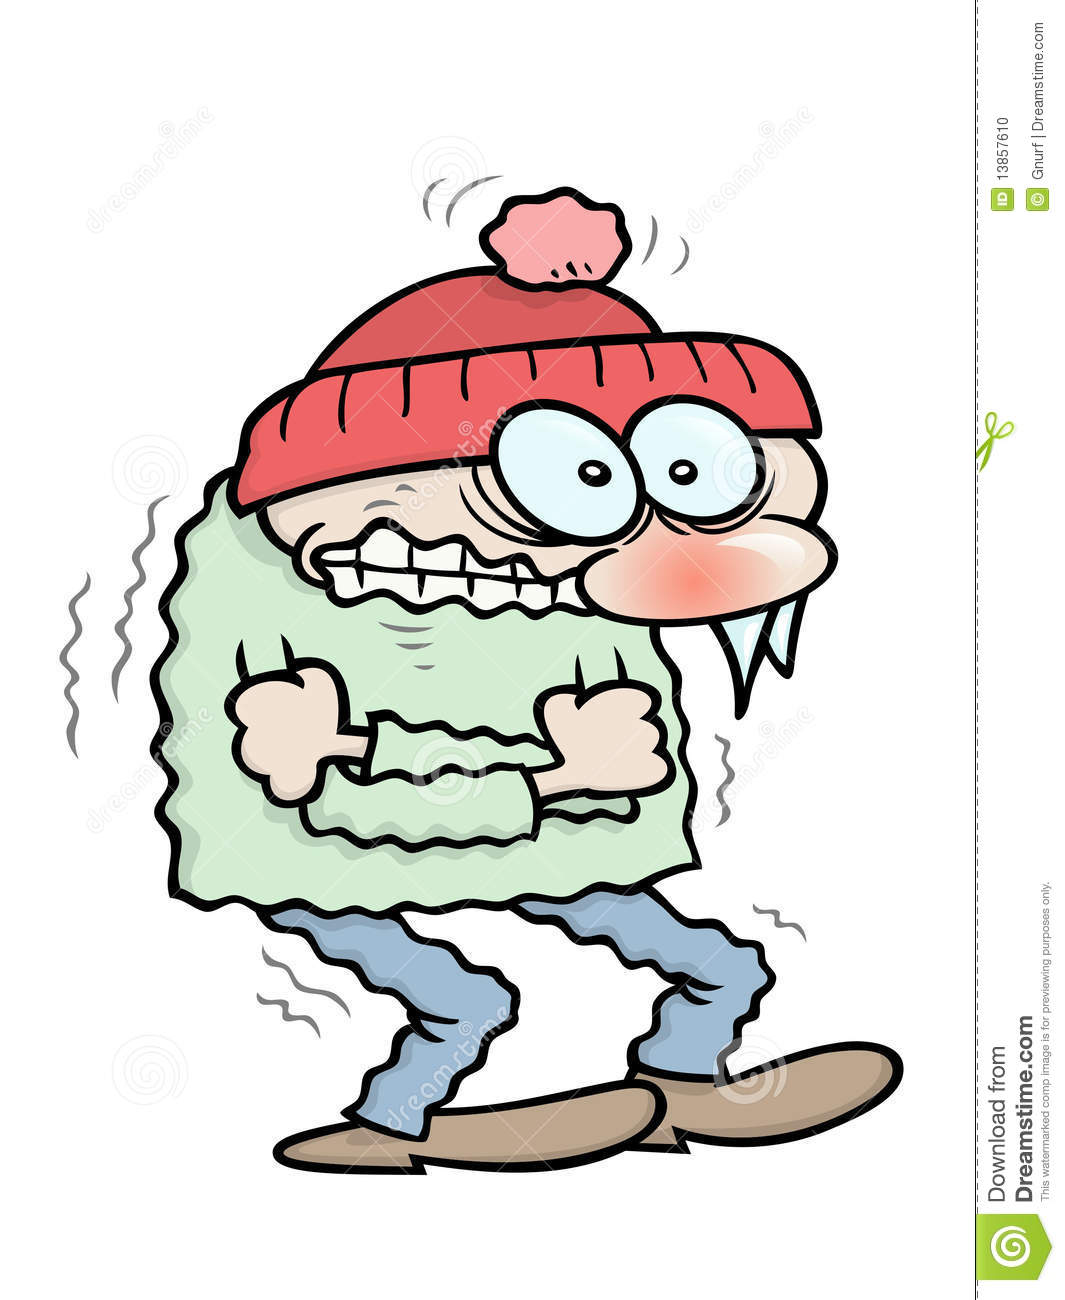 Chill clipart cold face Clip Images cold%20clipart Clipart Art